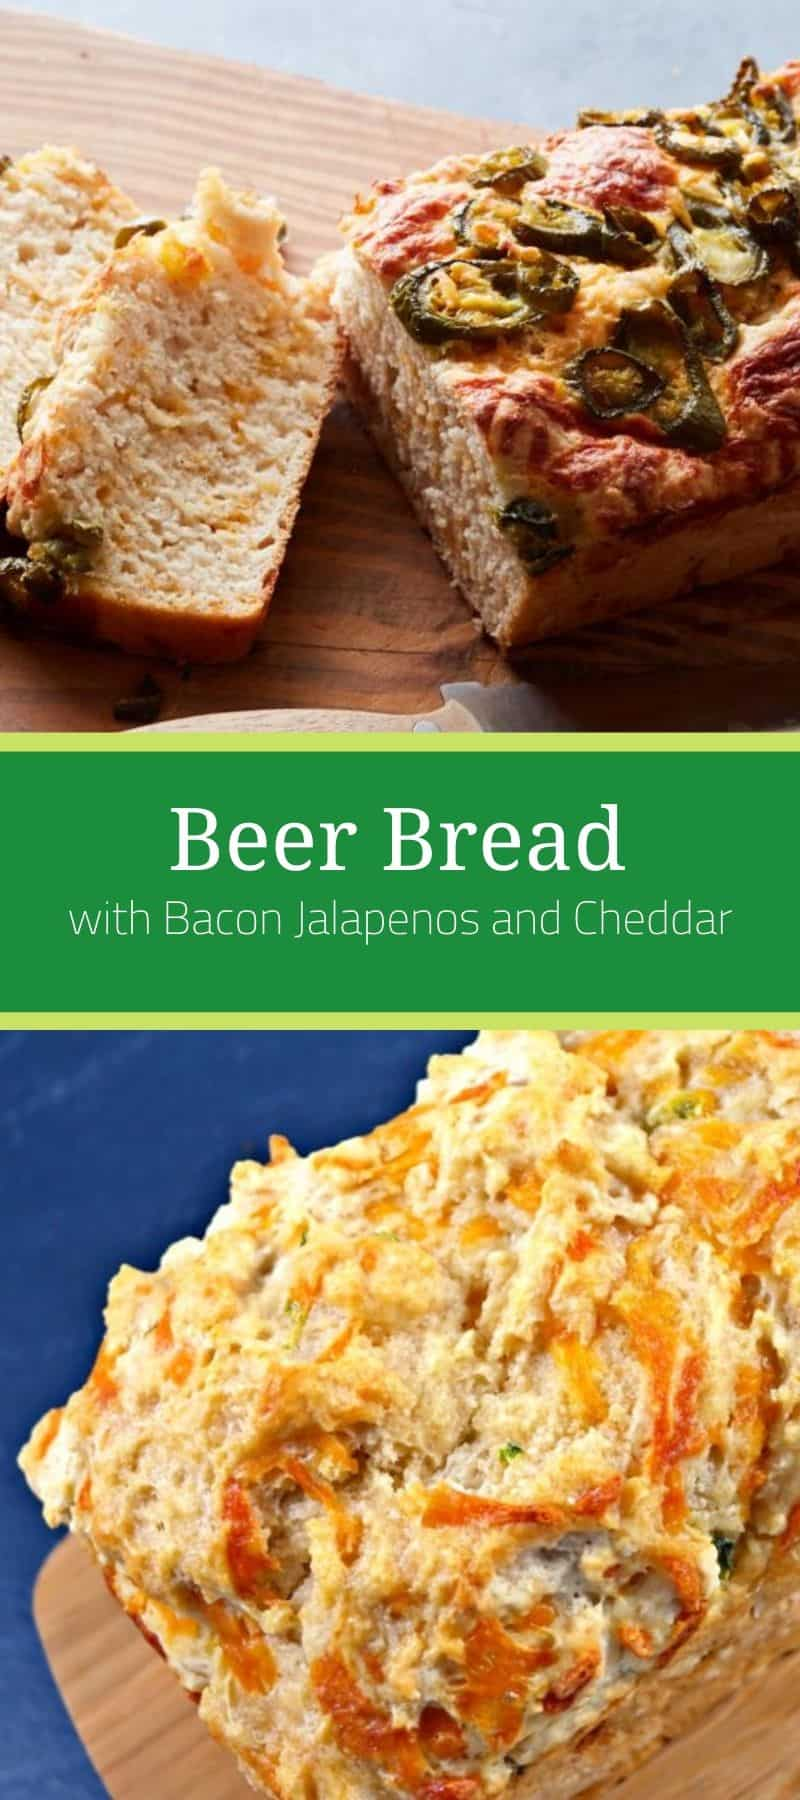 Beer Bread with Bacon Jalapenos and Cheddar 3